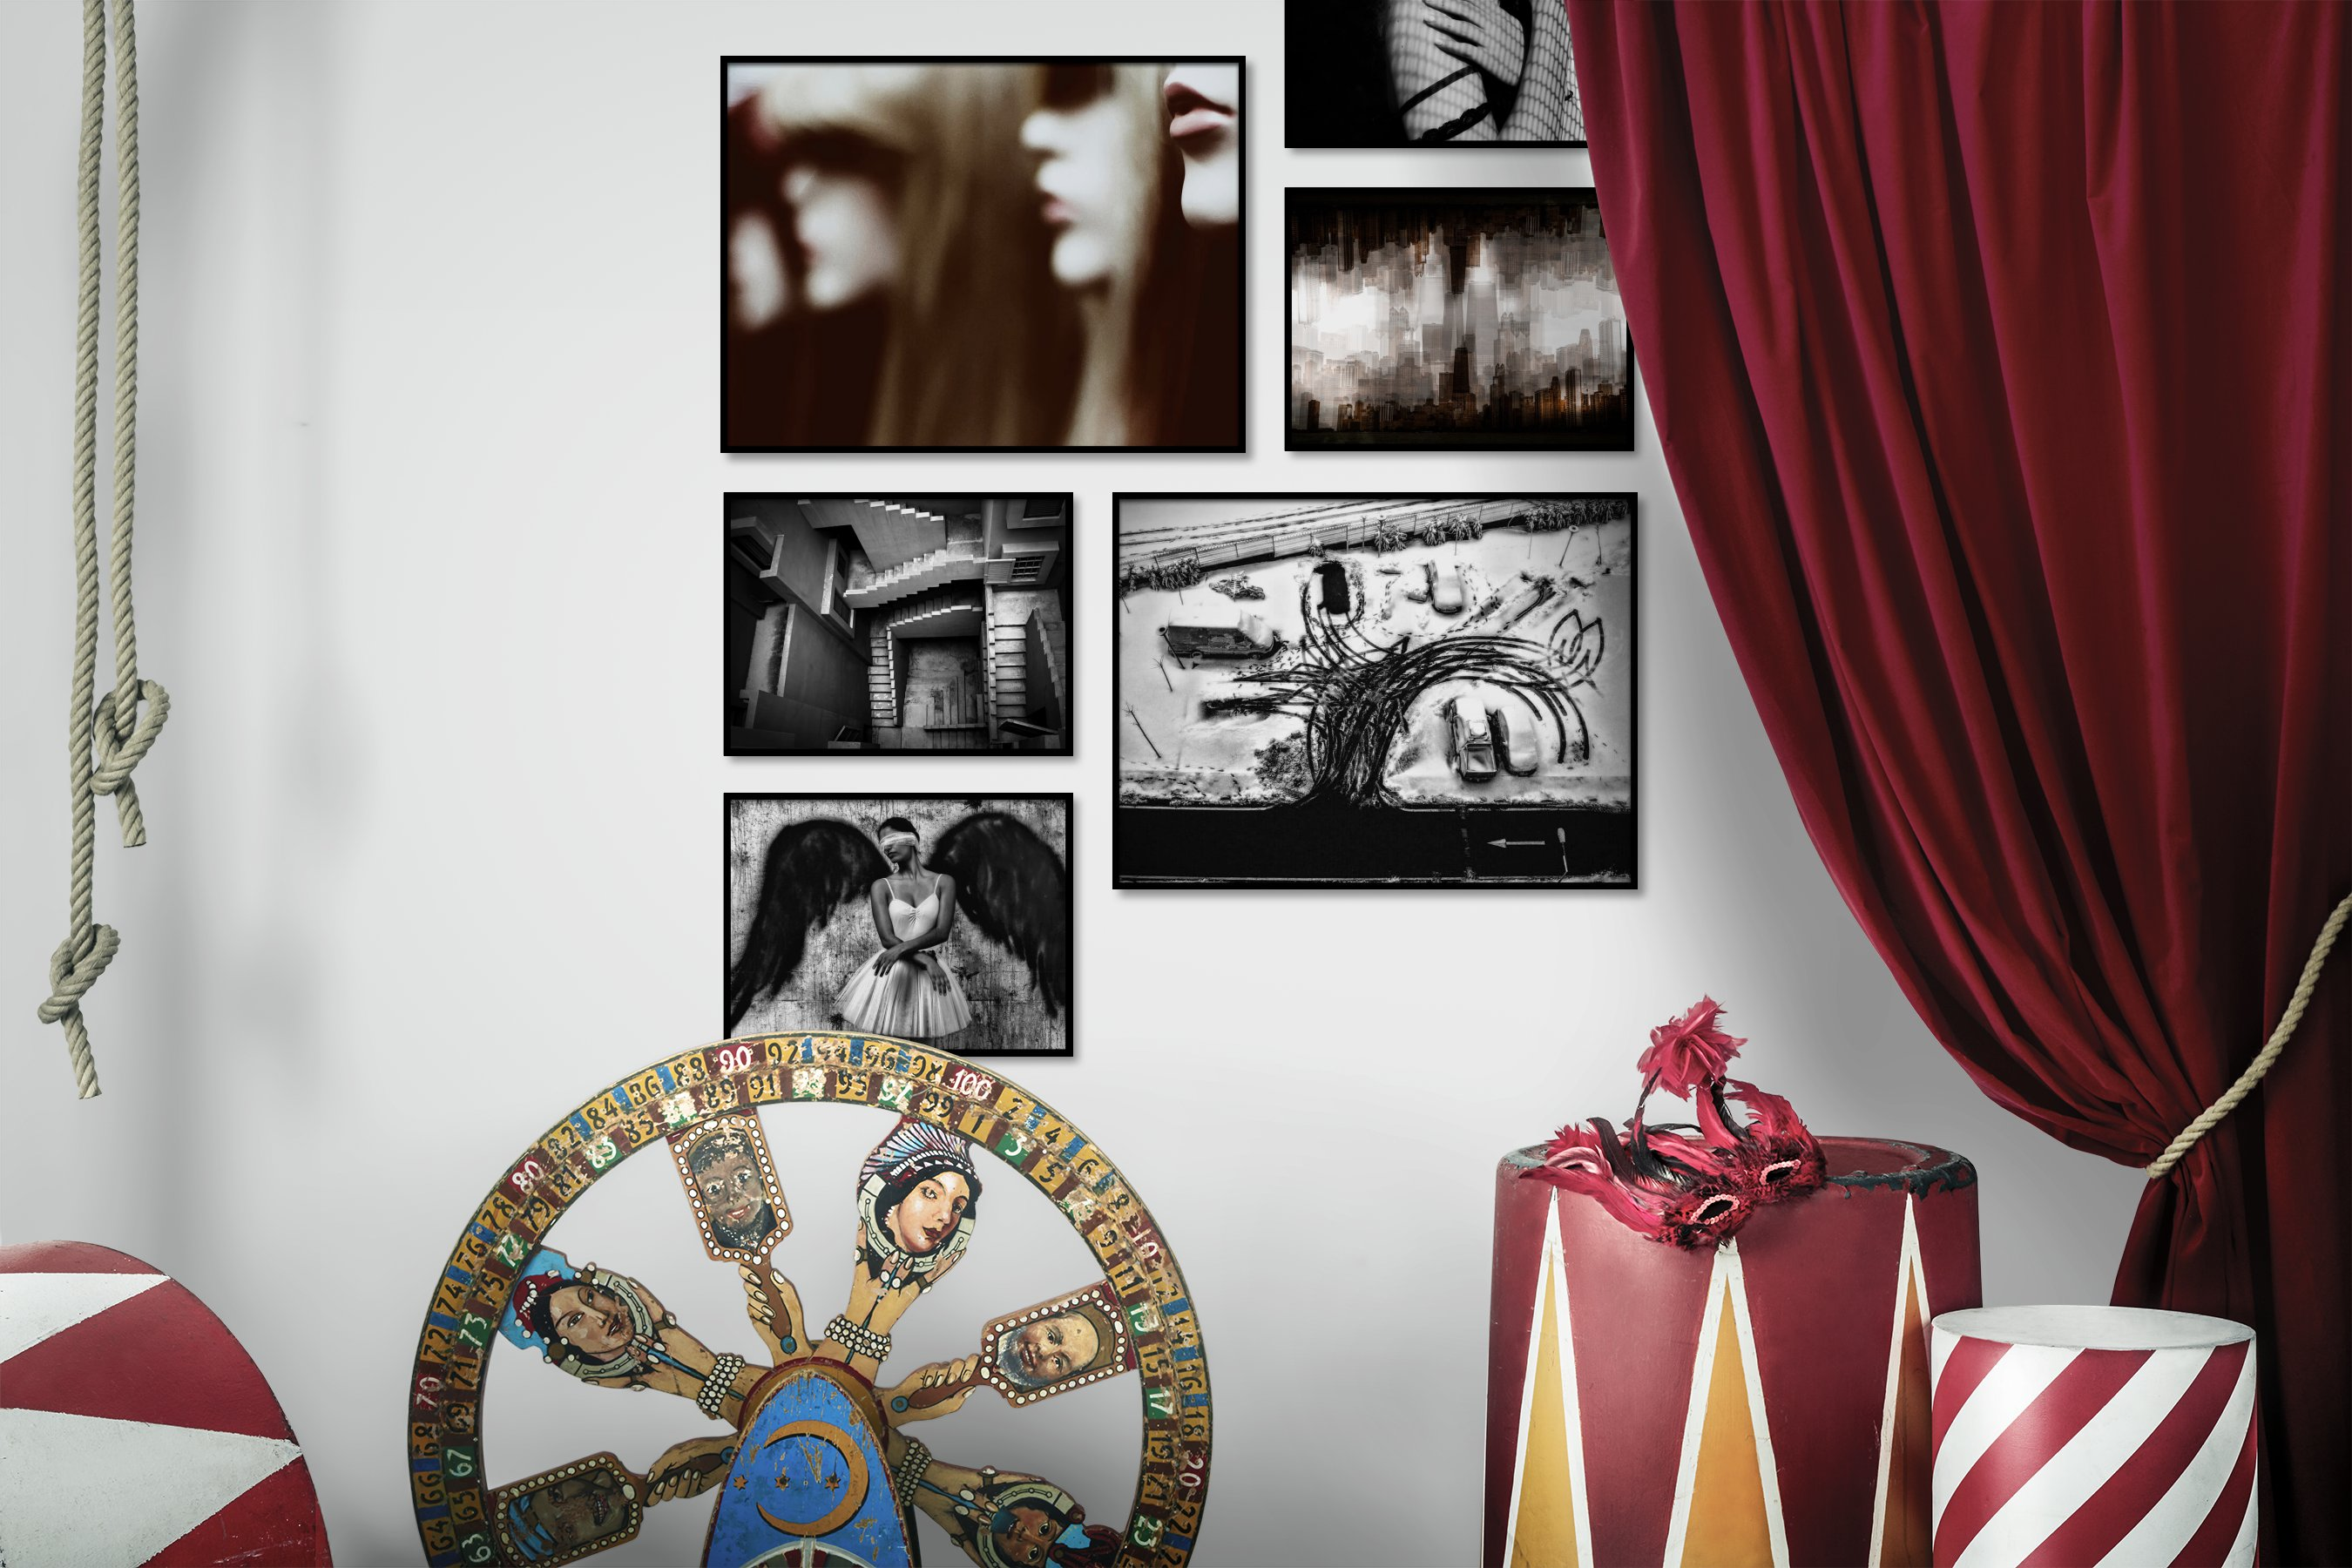 Gallery wall idea with six framed pictures arranged on a wall depicting Artsy, Vintage, For the Maximalist, City Life, Americana, Black & White, For the Moderate, and Fashion & Beauty